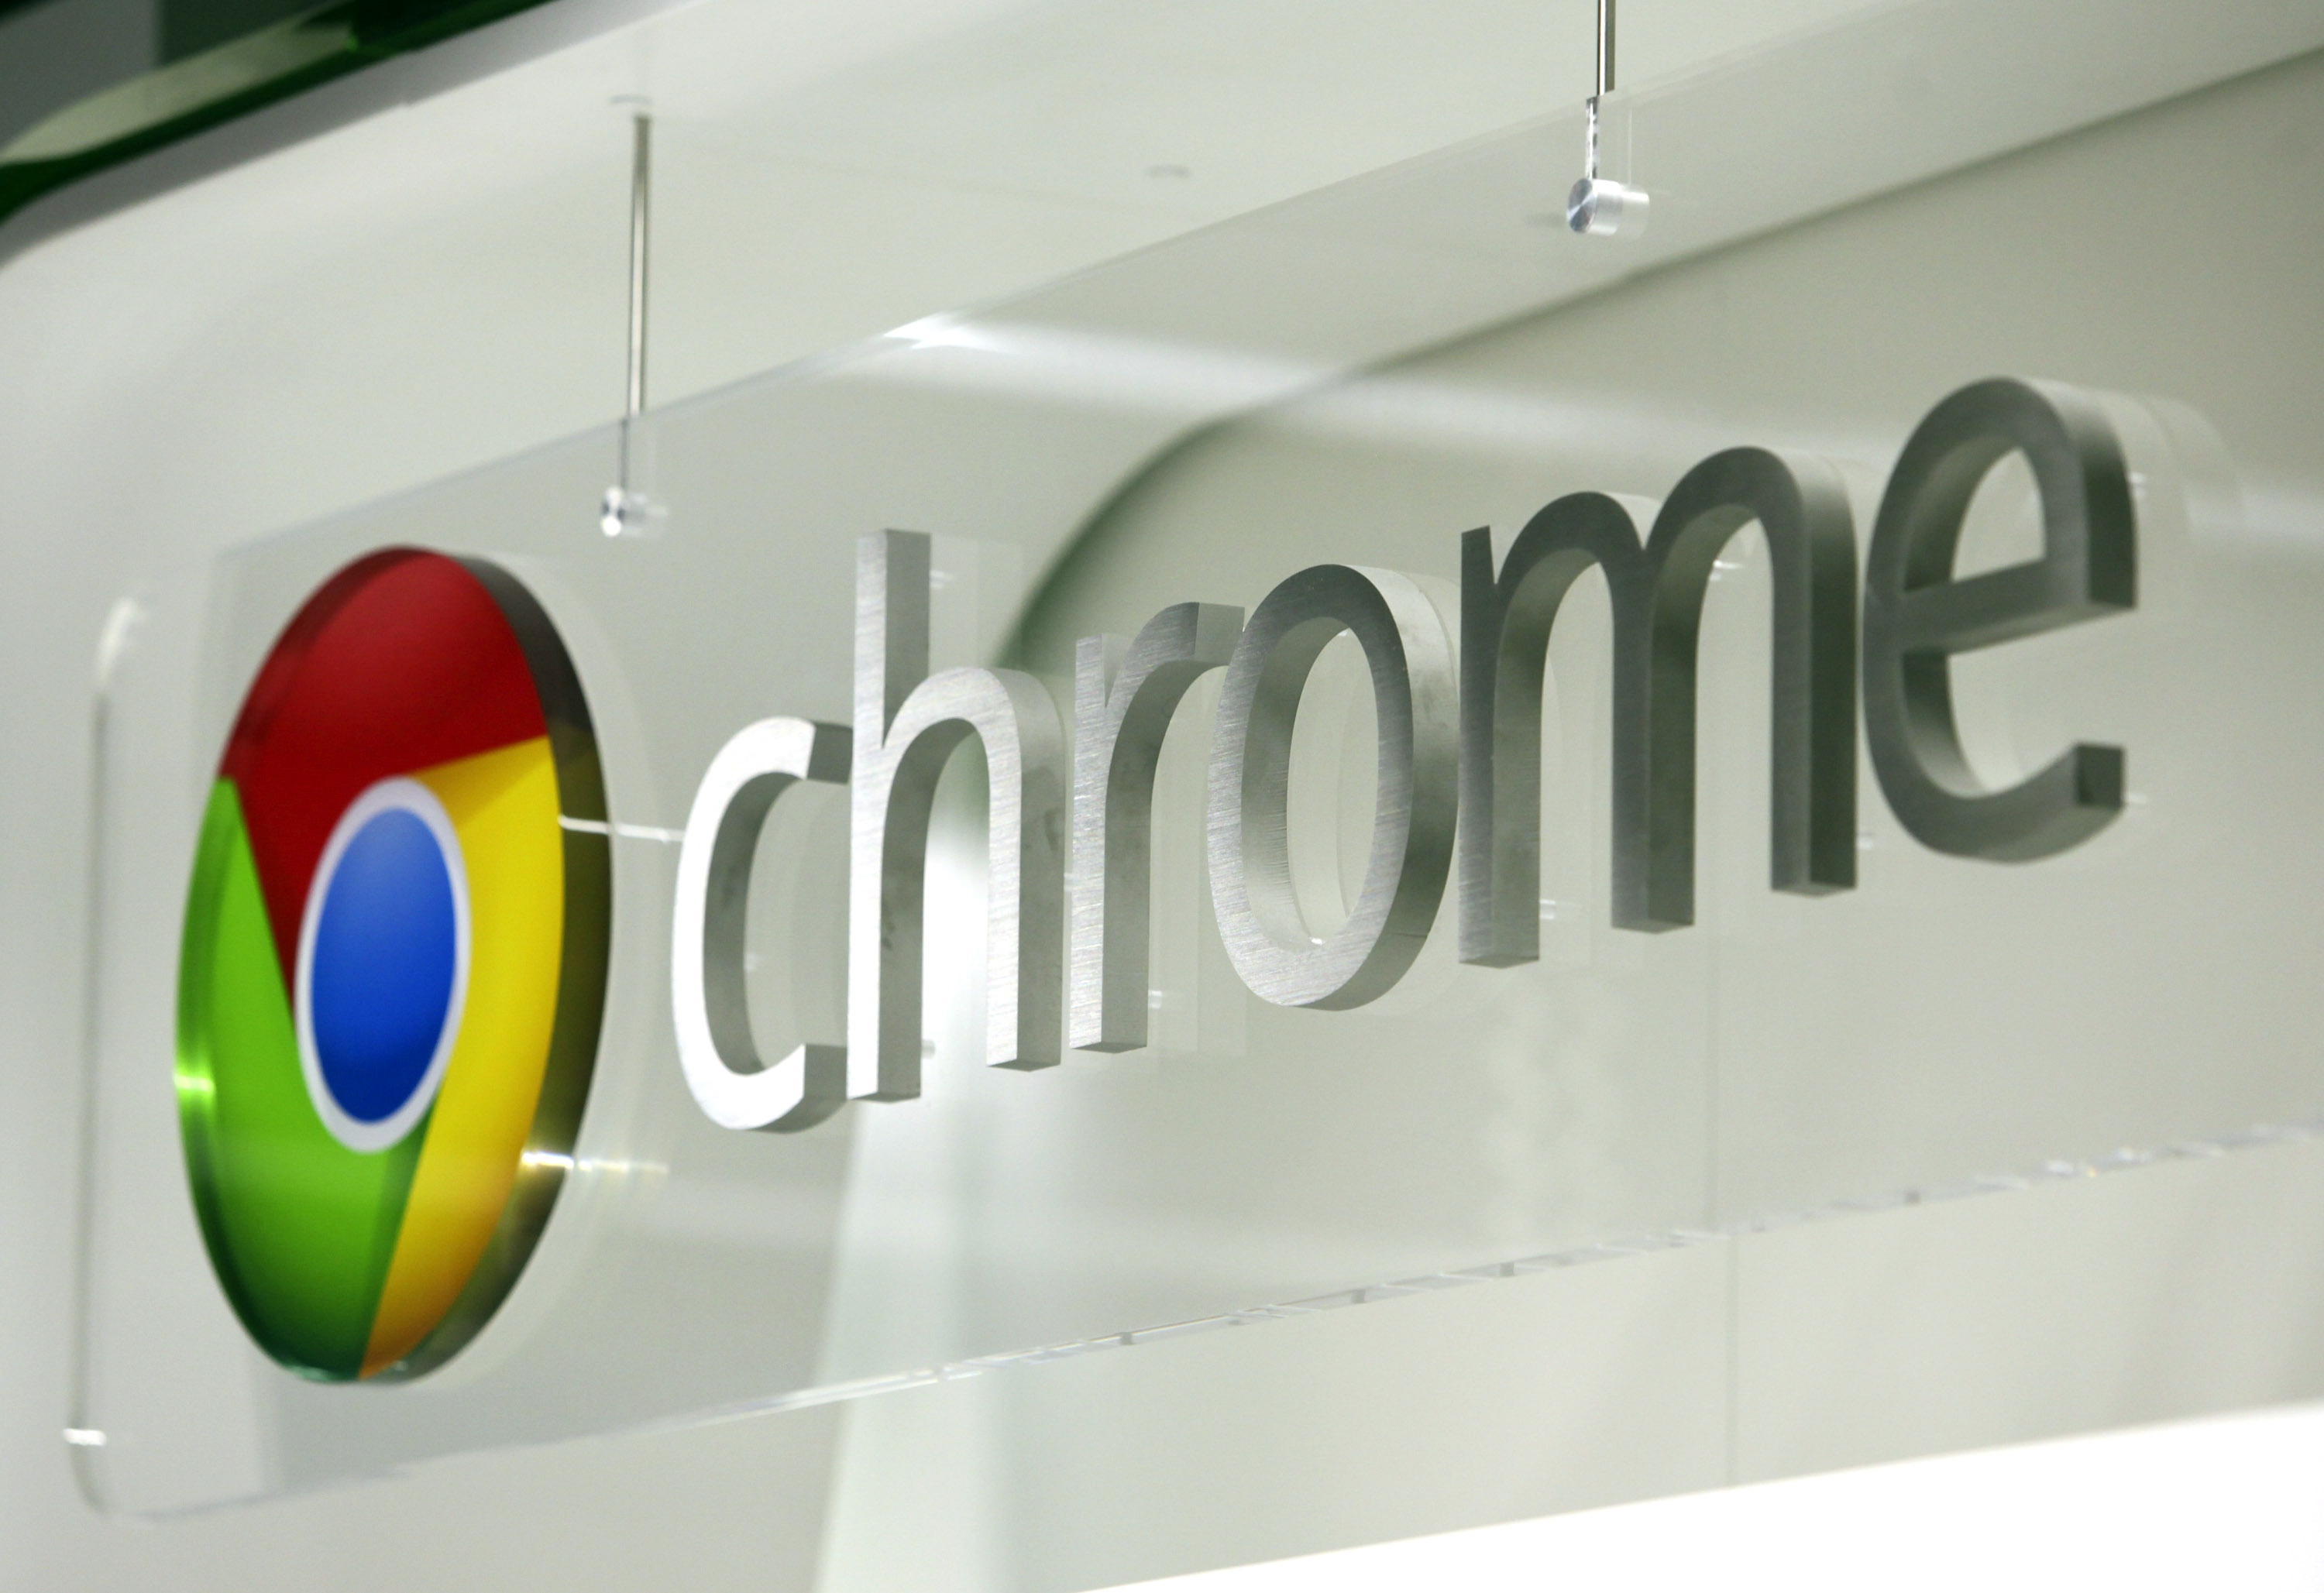 The logo of Google Inc. Chrome is displayed at a Currys and PC World 2 in 1 store, operated by Dixons Retail Plc, on Tottenham Court Road in London, U.K., on Wednesday, Dec. 7, 2011.